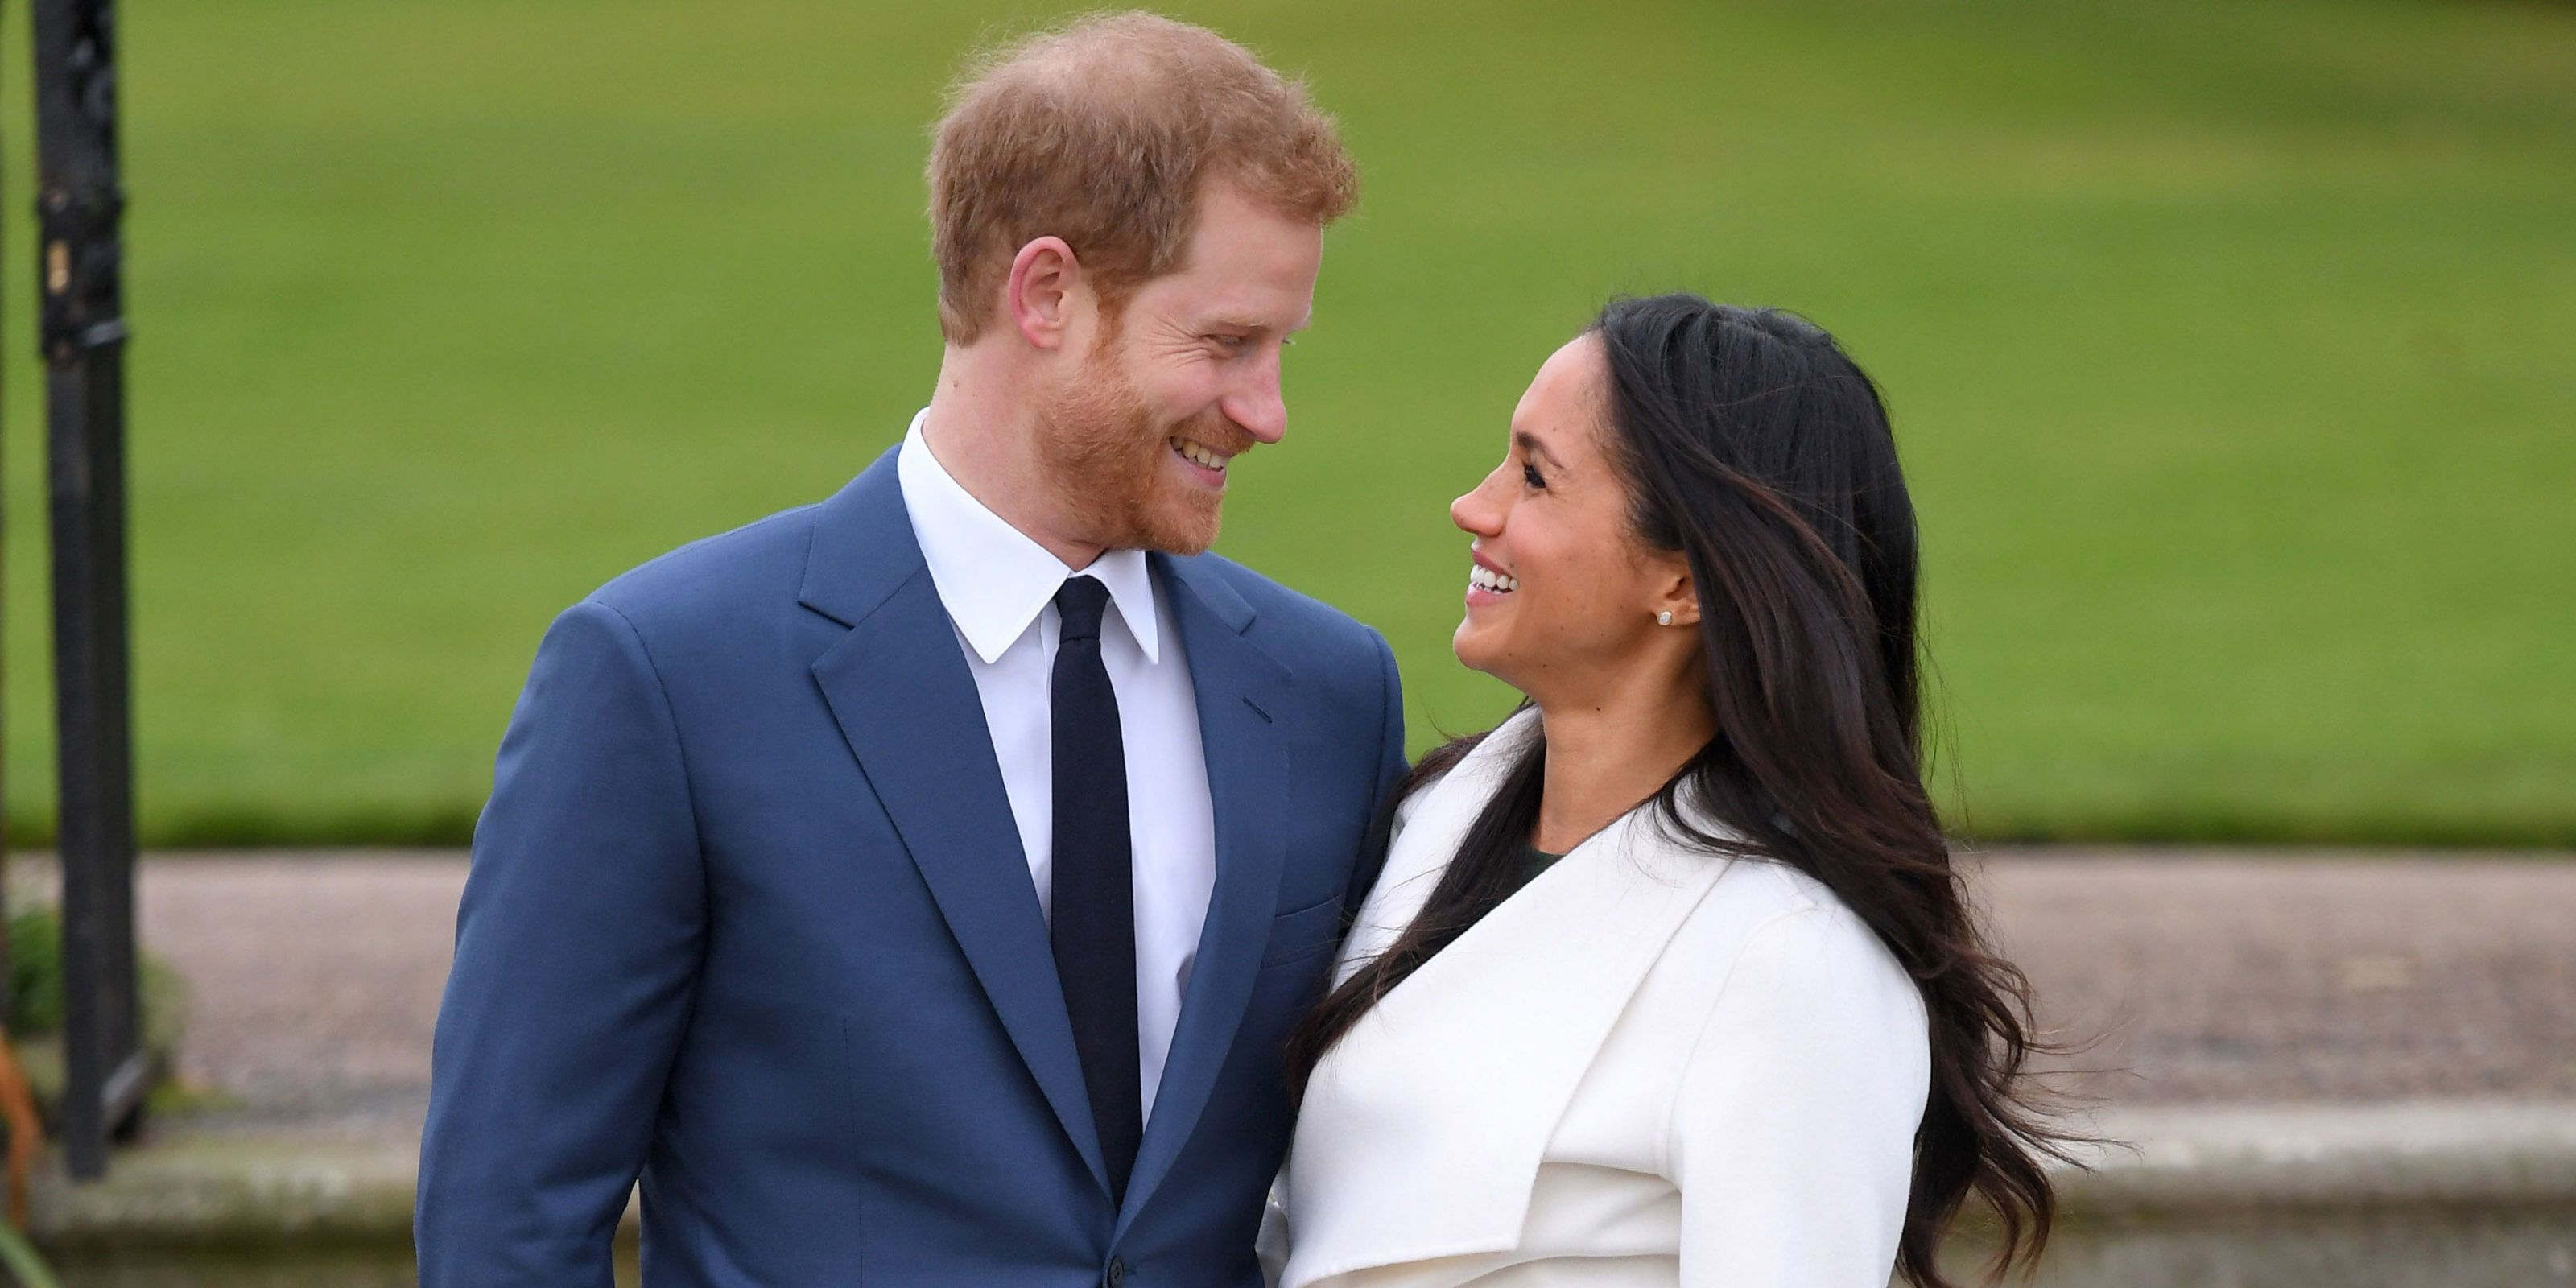 Why It's Unlikely Prince Harry Will Share His Royal Fortune With Meghan Markle After Their Wedding